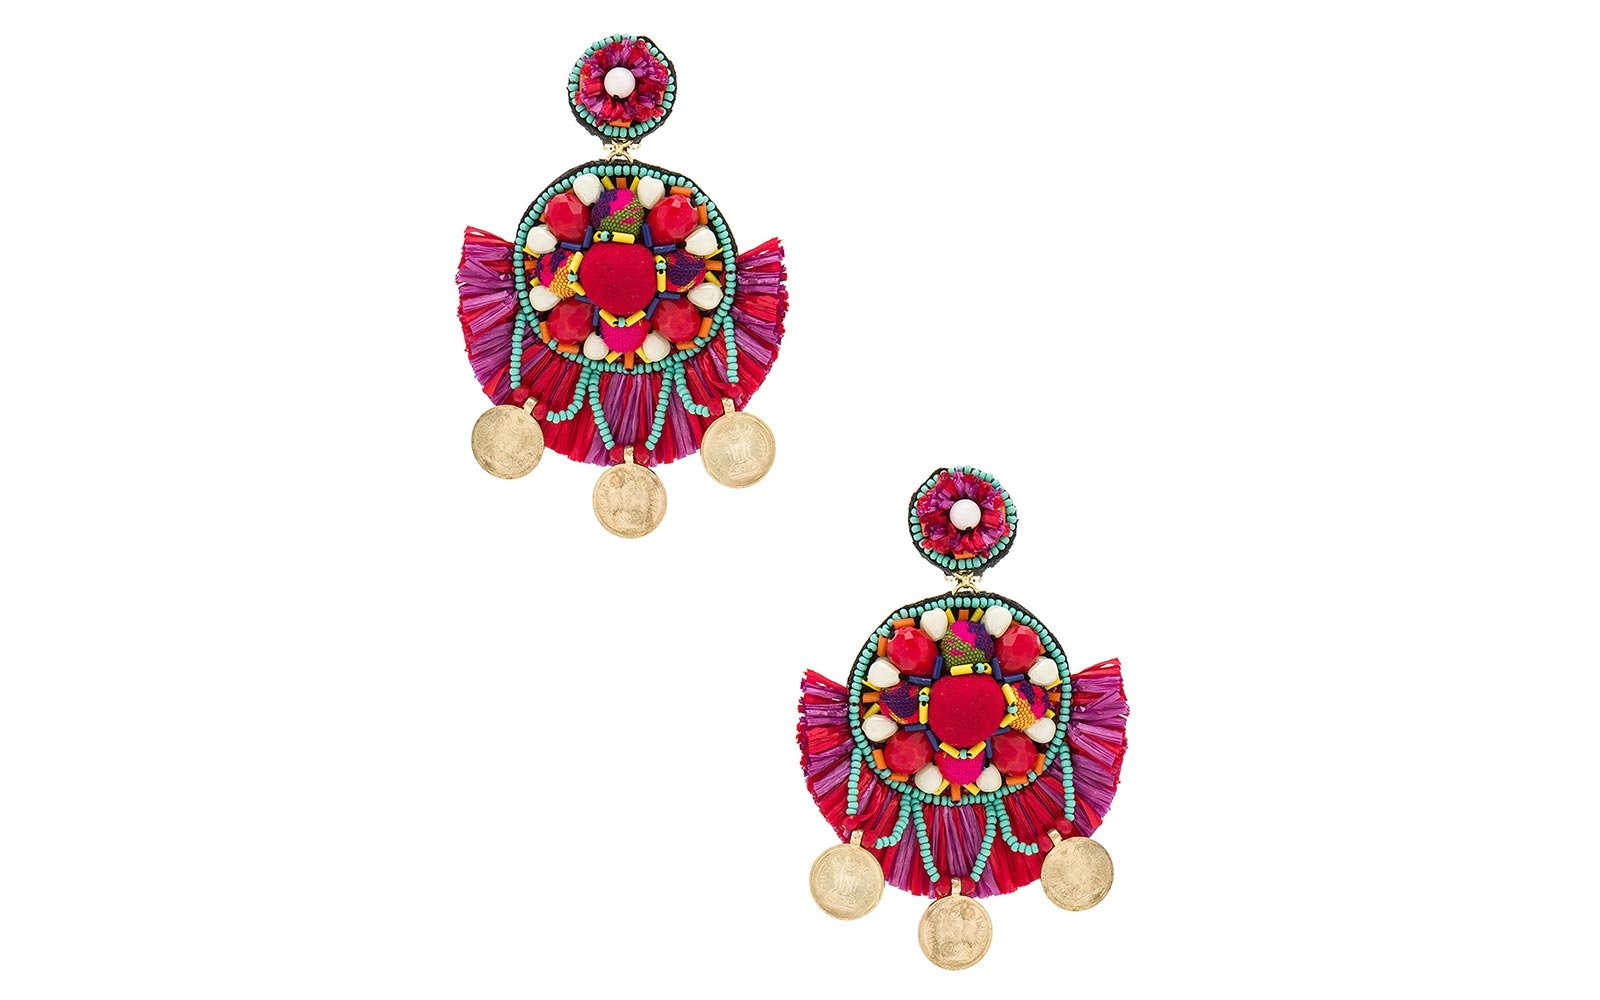 Ranjana Khan Summer Statement Earrings